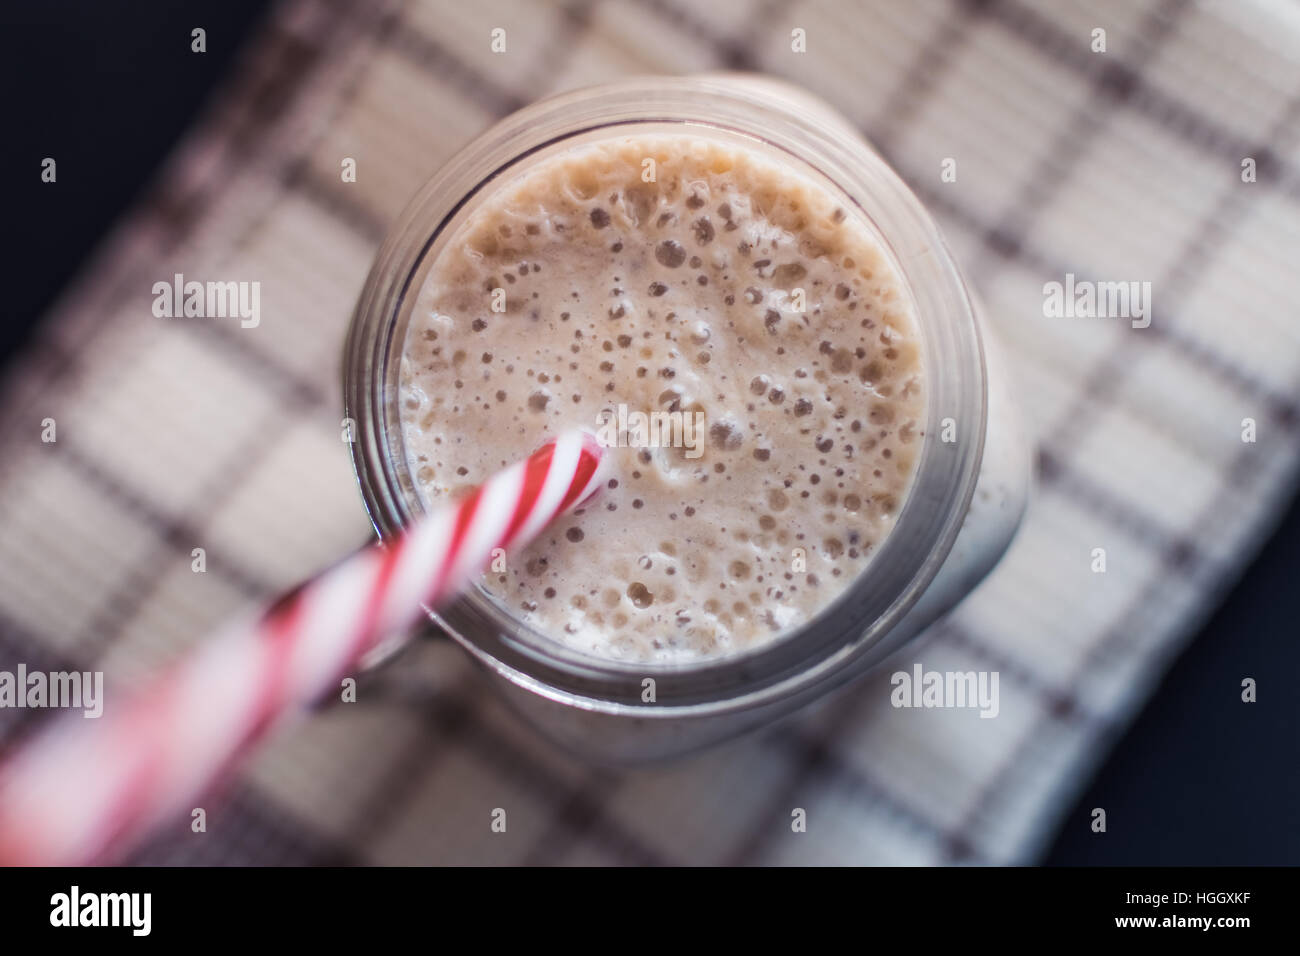 Healthy smoothie. Banana,oats,Chia seeds and honey mix. Bananas in background, Top view. - Stock Image